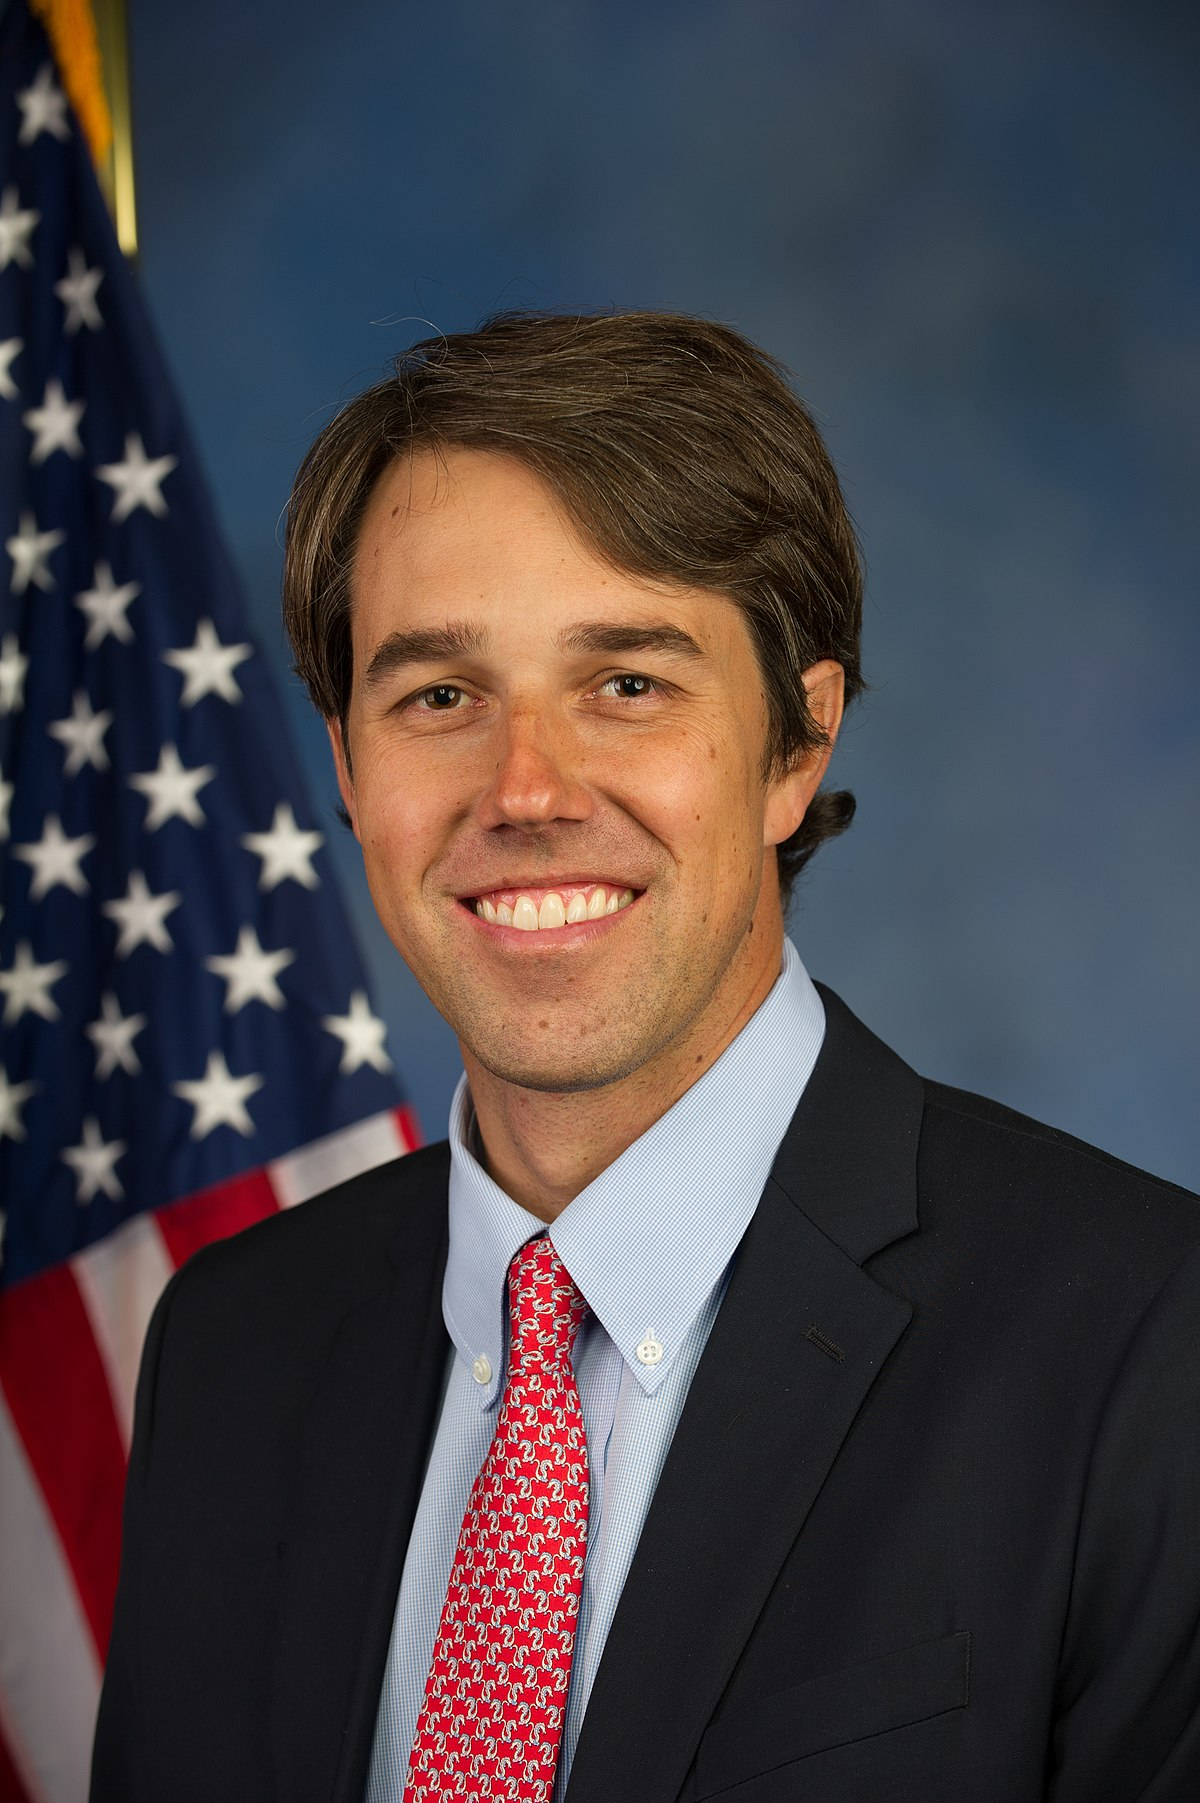 beto o'rourke - photo #22